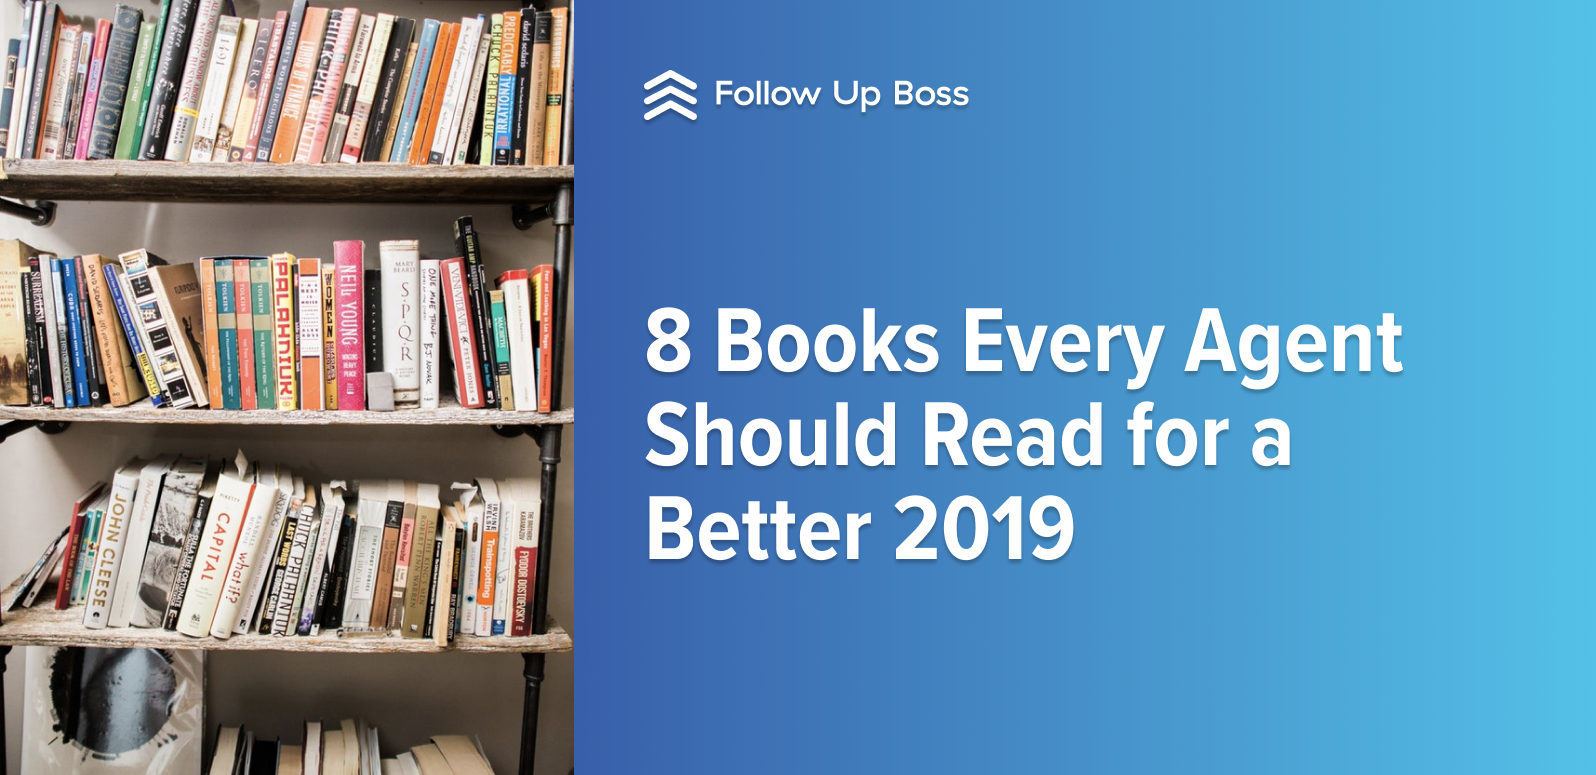 Best Books for Real Estate Agents: 10 Must-Read Real Estate Books to Close More Deals this Year [updated for 2020]